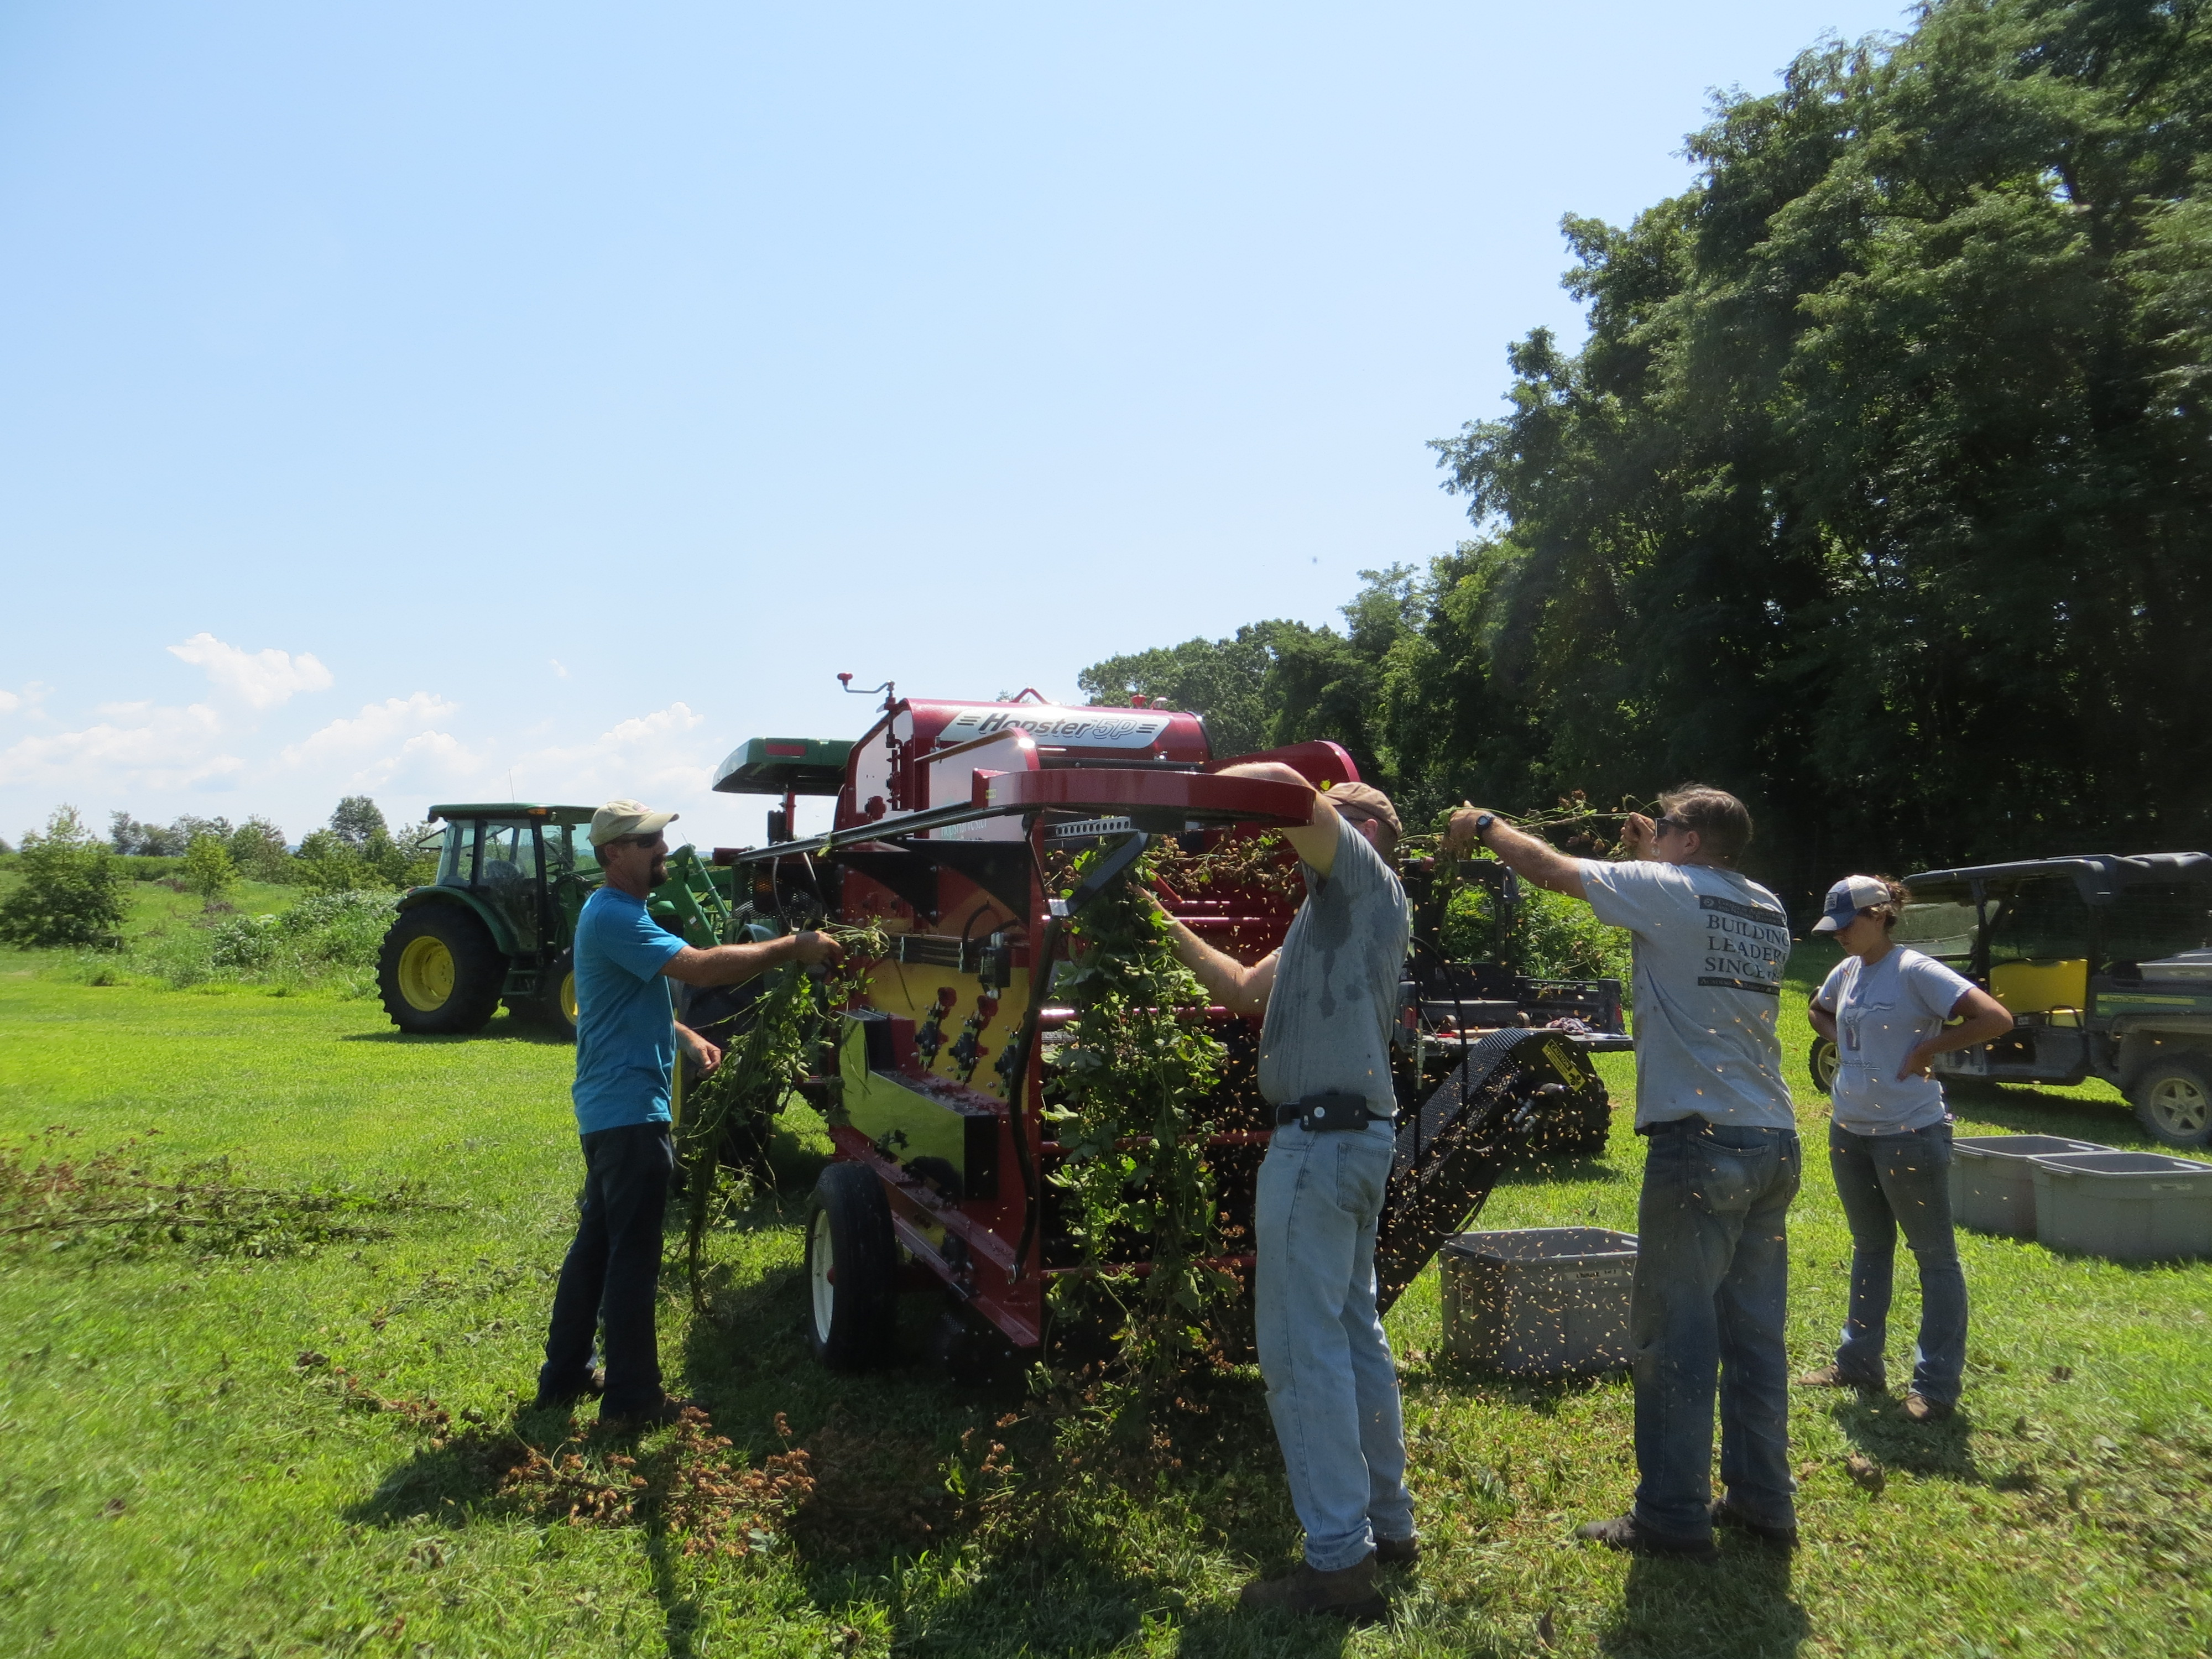 Hops are harvested at the University of Maryland farm.